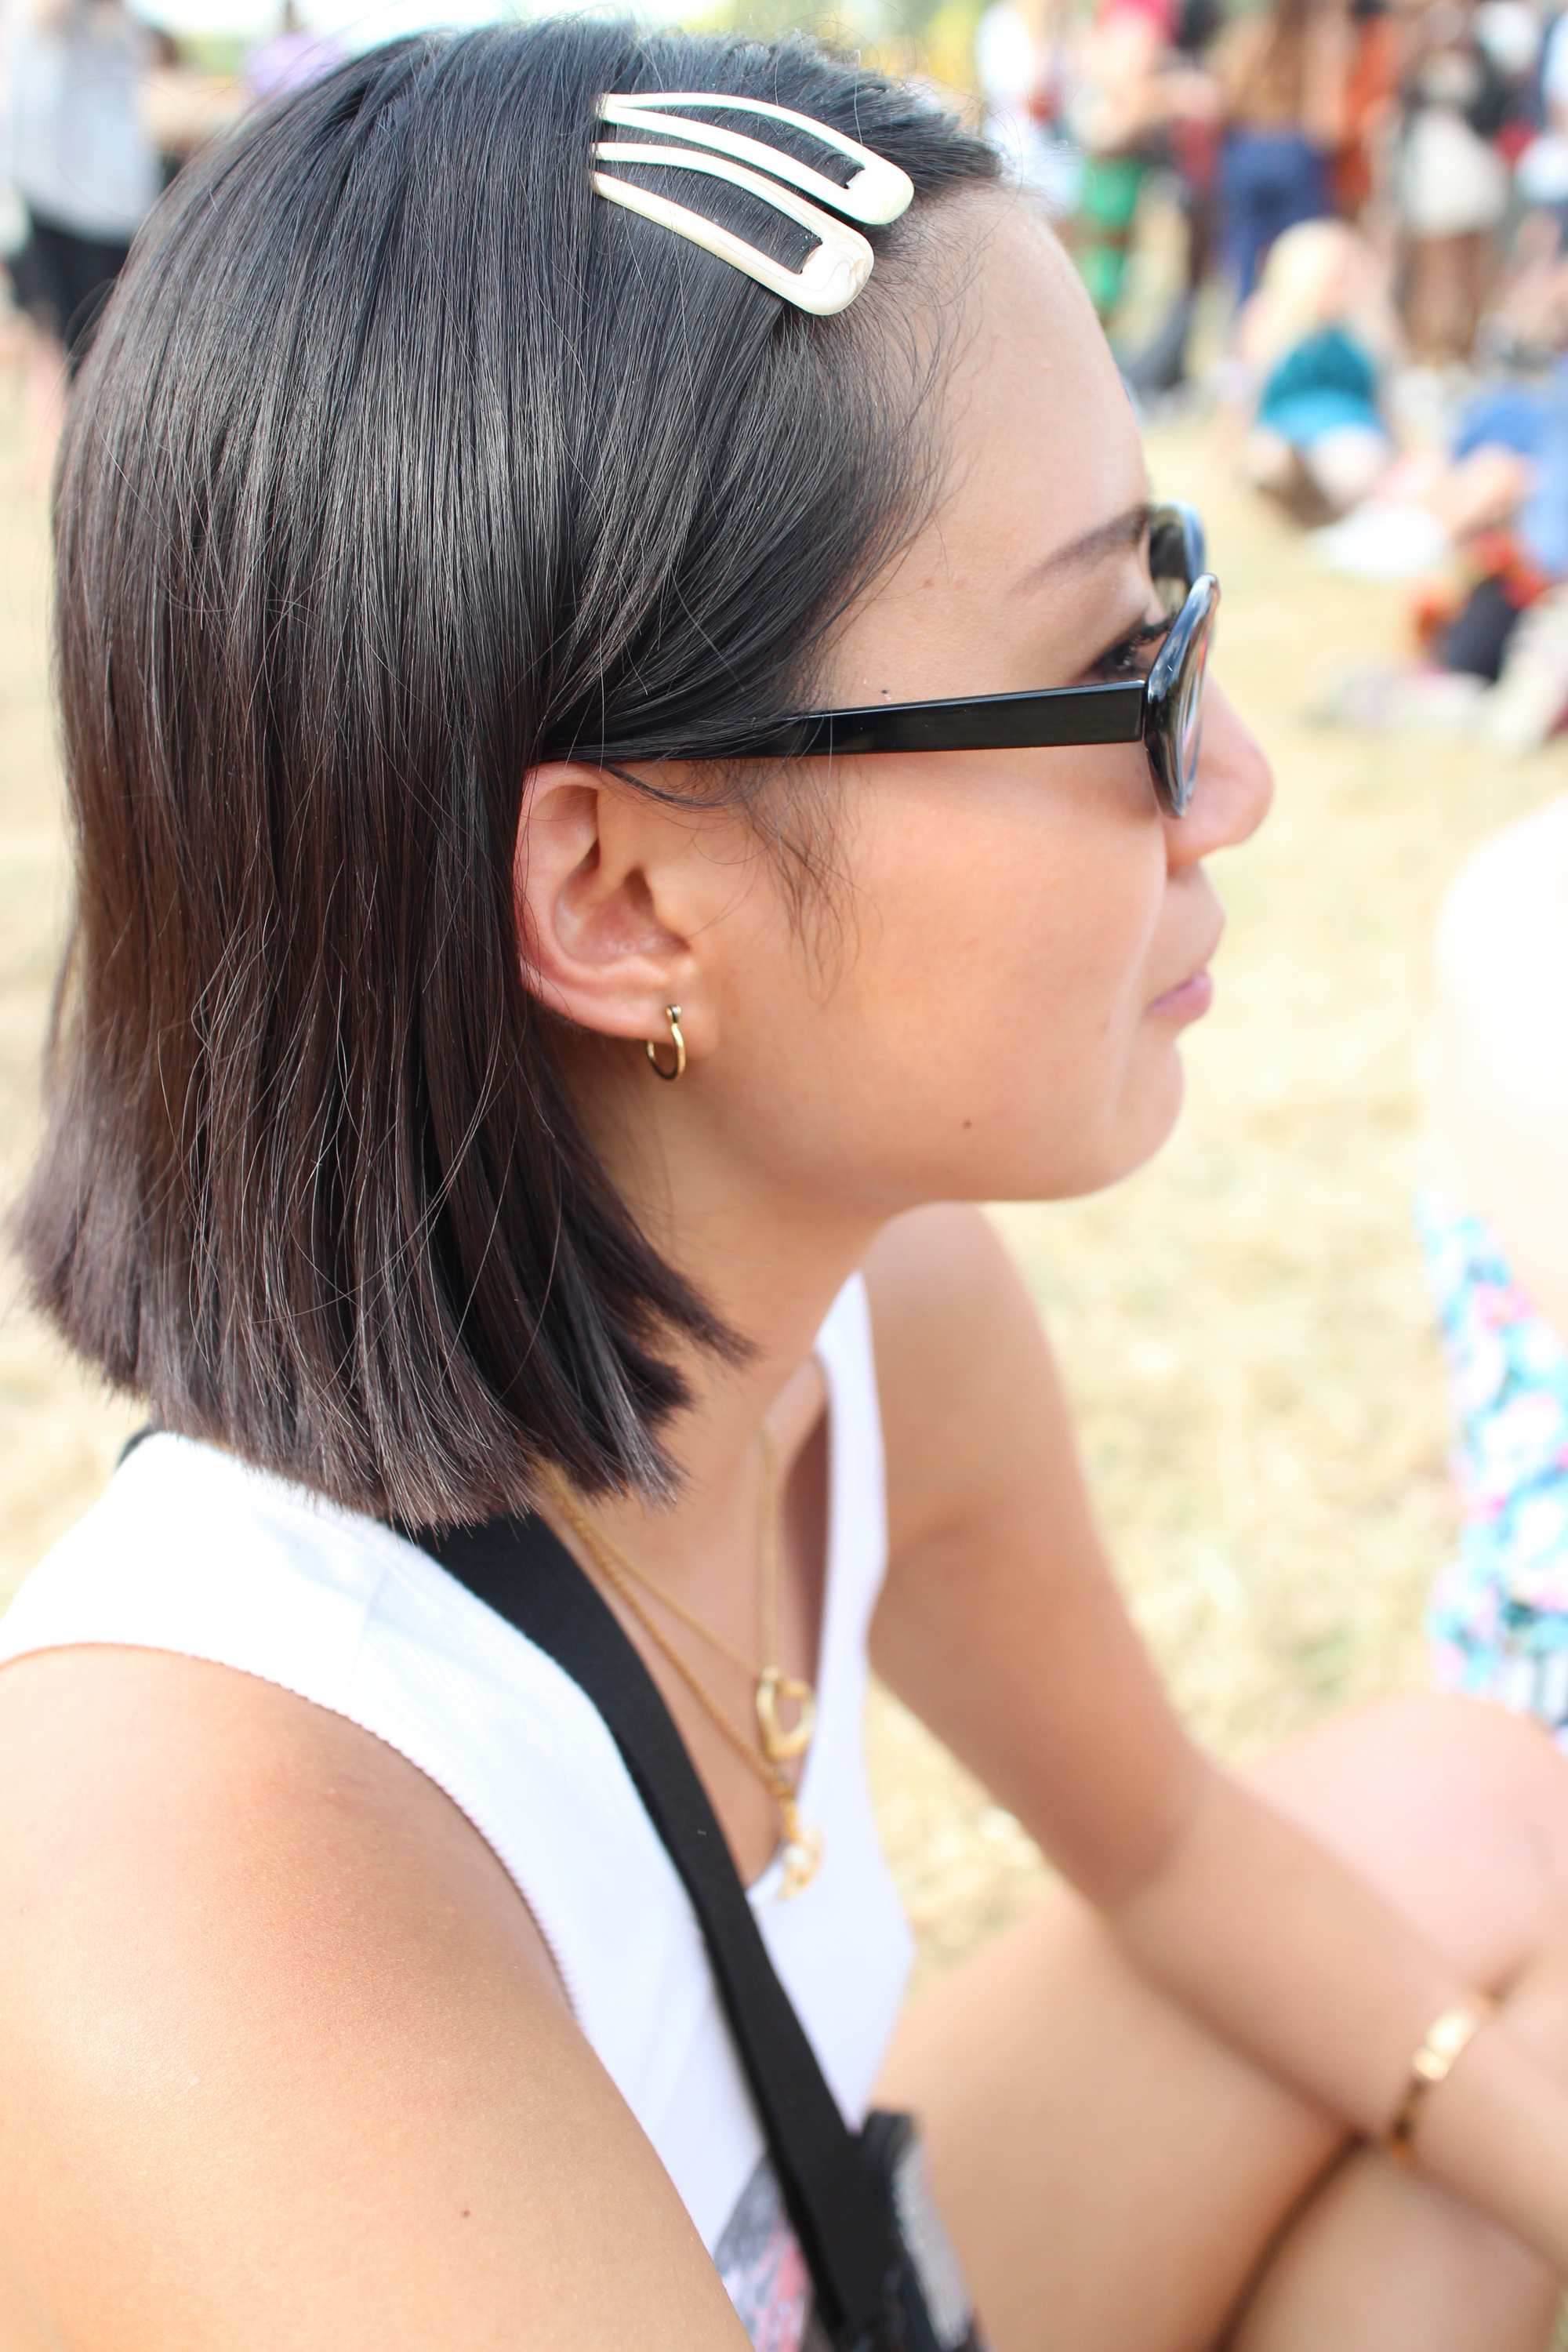 Festival hair accessories: Side view of woman with dark brown bob length hair styled with bright snap clips wearing sunglasses sitting on the grass.